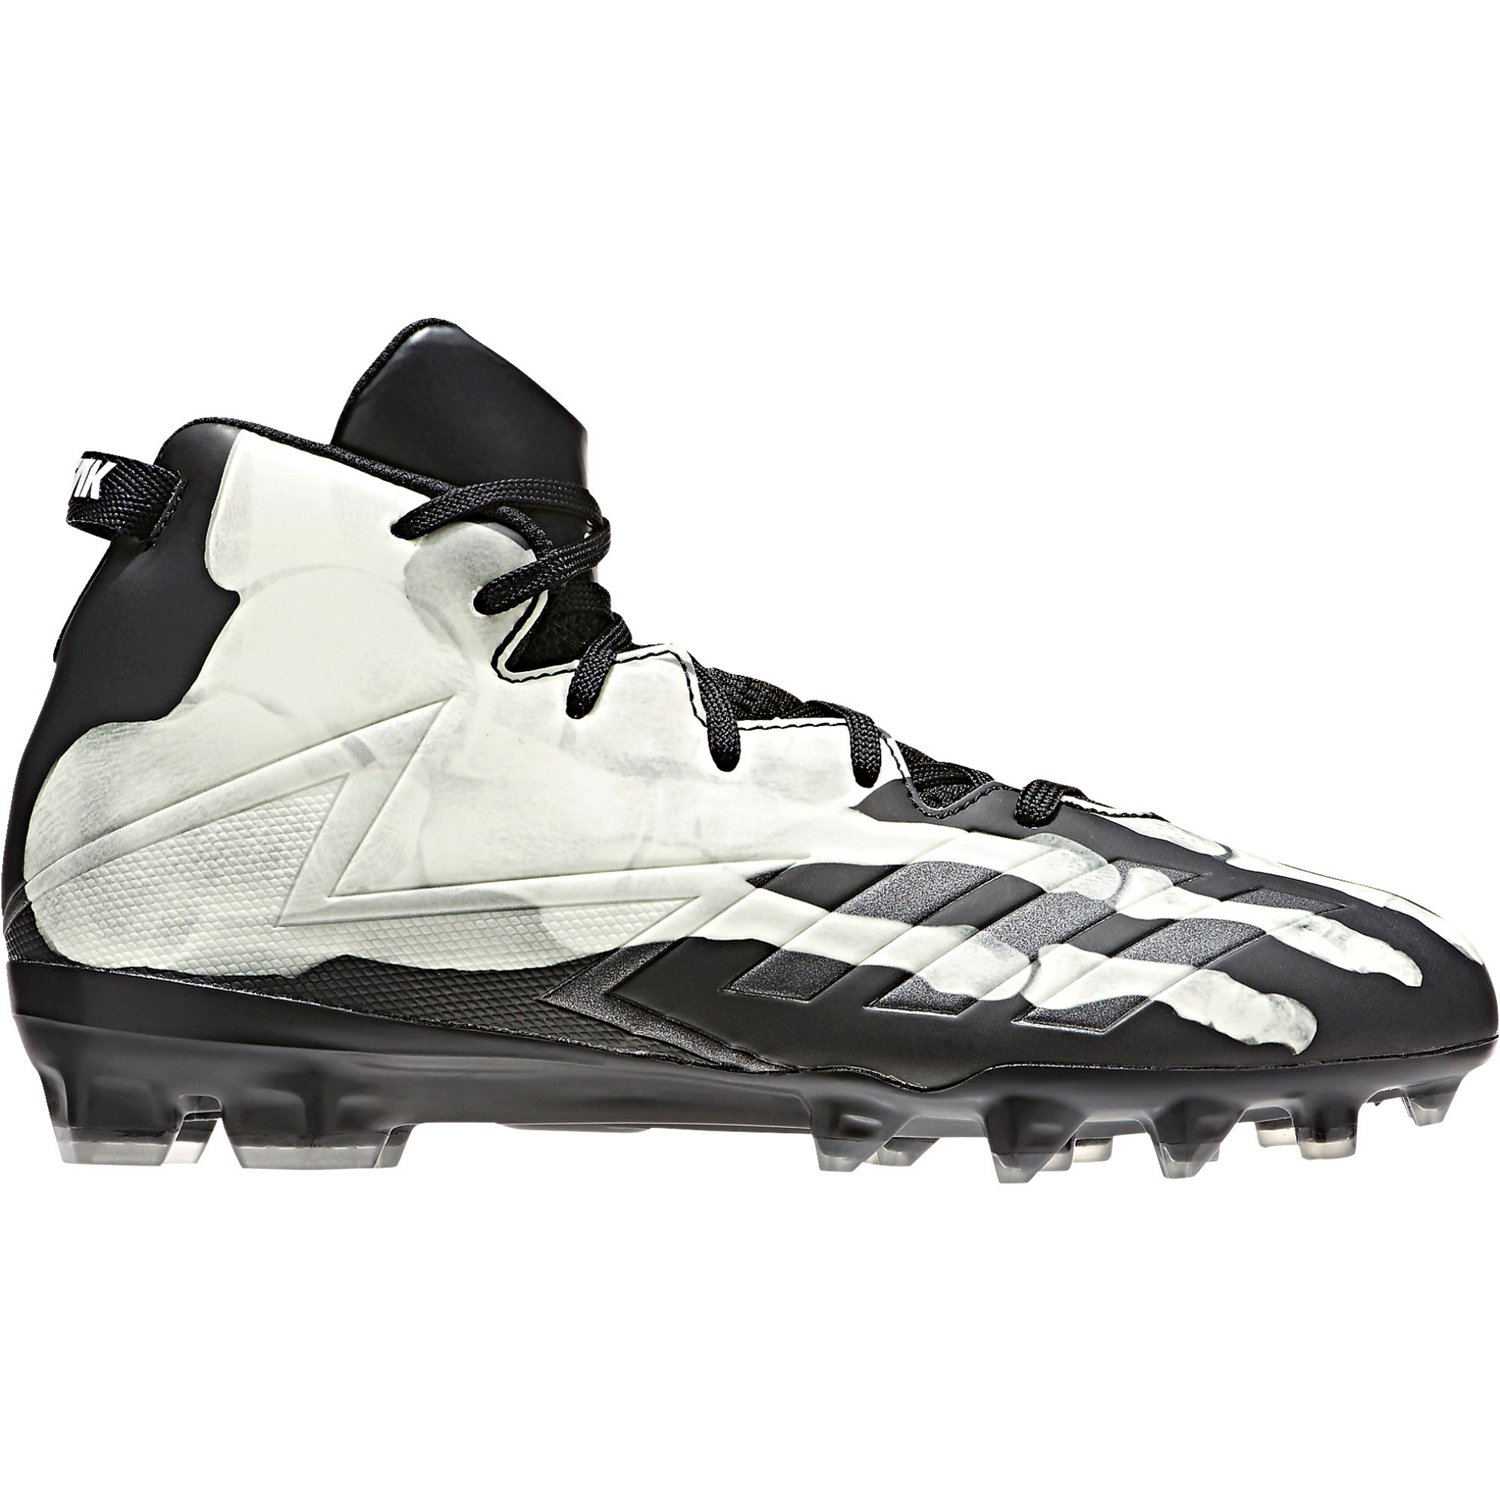 Football Cleats | Football Shoes & Youth Cleats | Academy